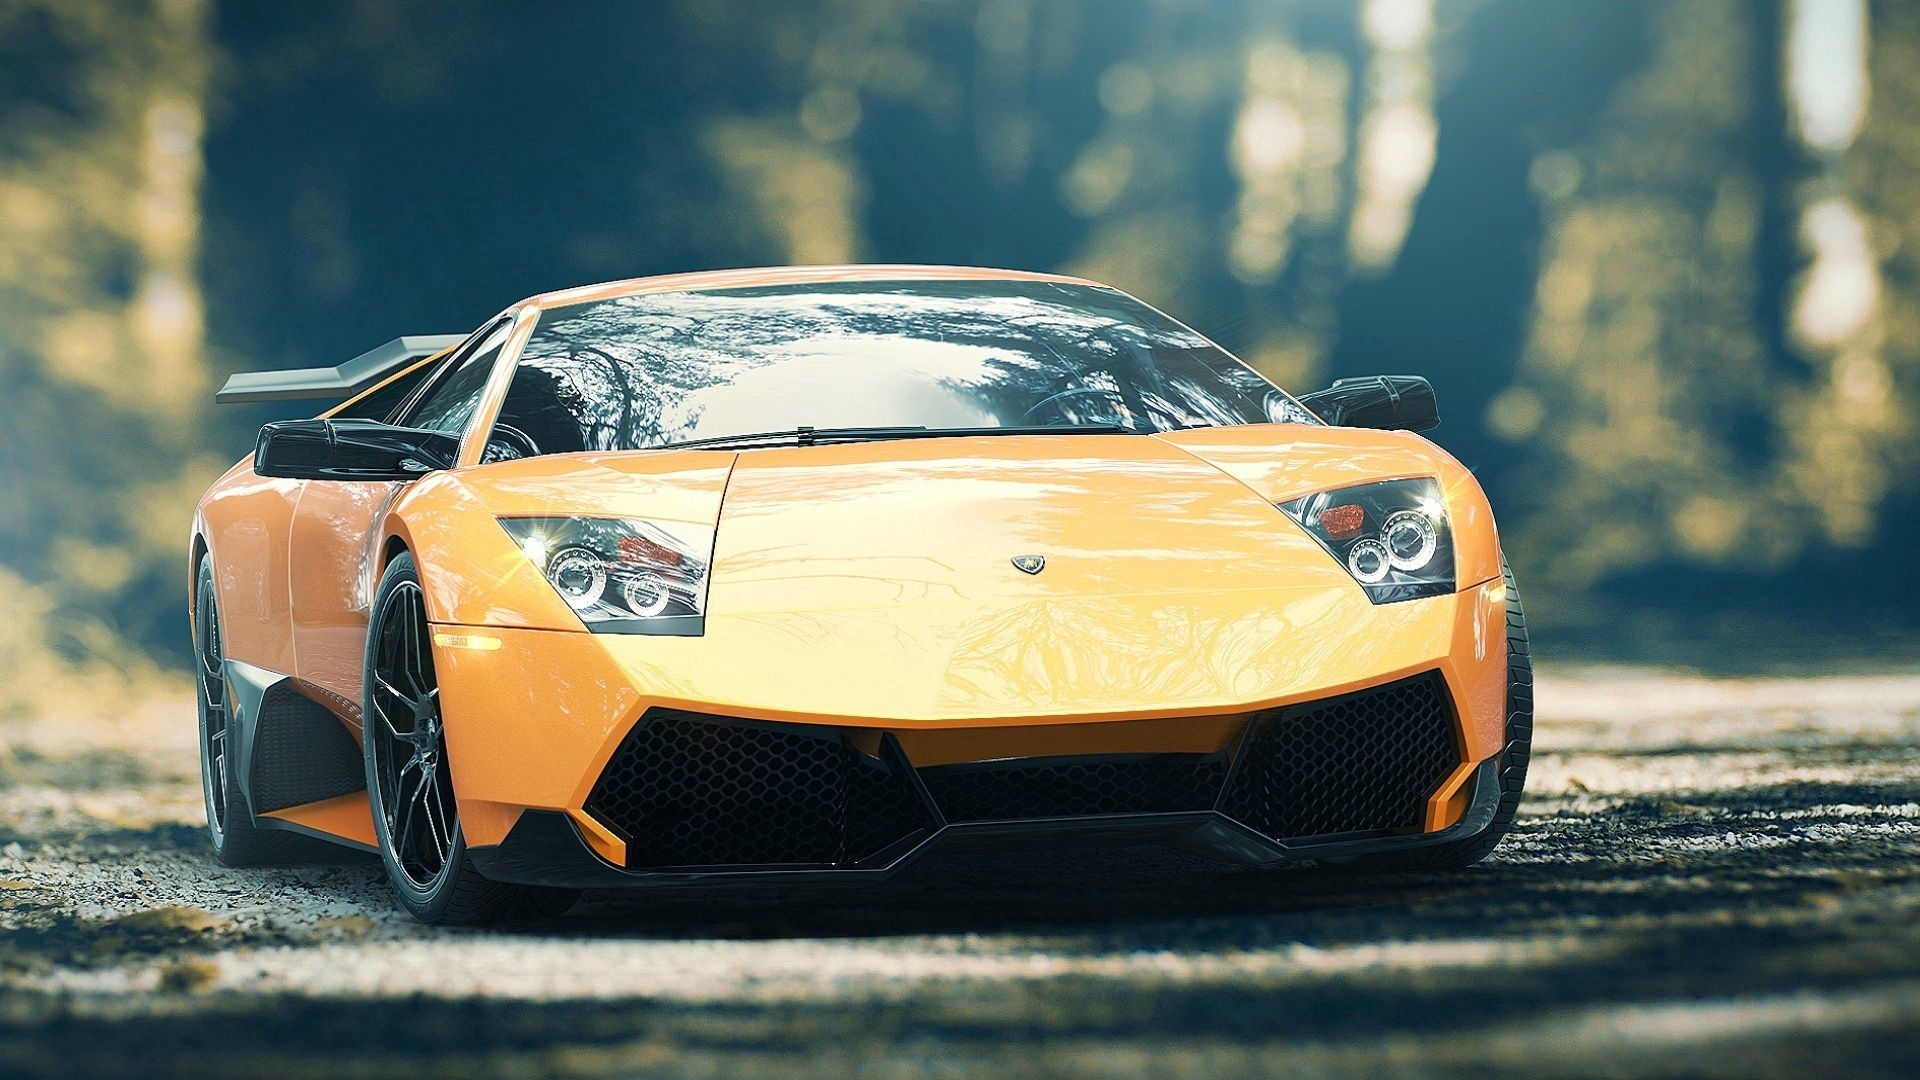 158111 Screensavers and Wallpapers Front View for phone. Download Lamborghini, Cars, Car, Front View, Machine, Murcielago, Lp670-4 pictures for free